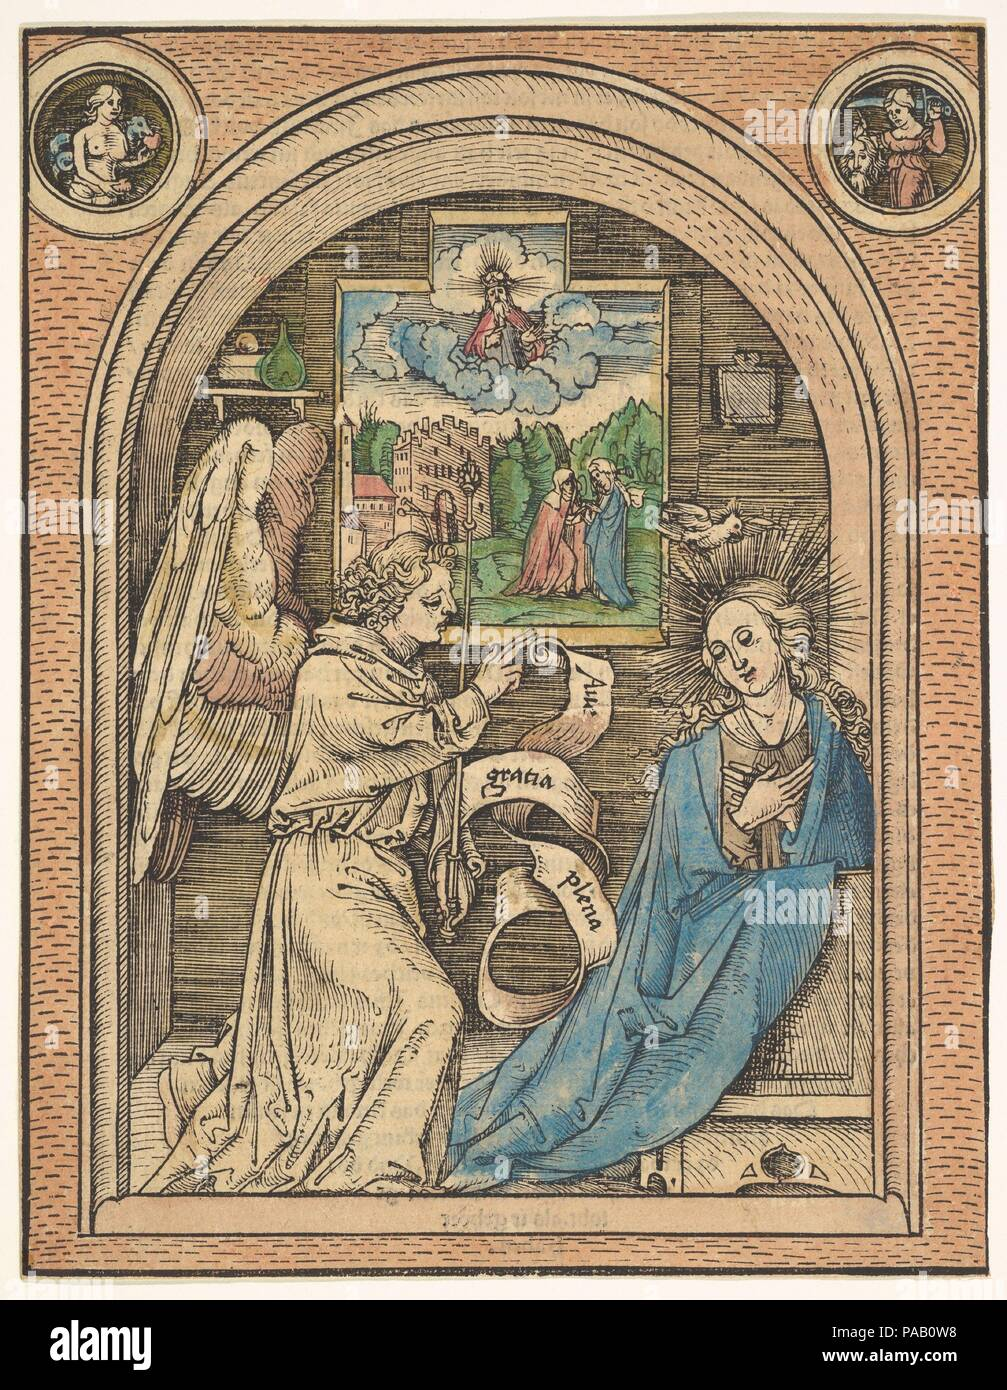 The Annunciation. Artist: Hans Wechtlin (German, Strasbourg ca. 1480/85-after 1526). Dimensions: sheet: 8 9/16 x 6 11/16 in. (21.7 x 17 cm). Date: late 15th-early 16th century. Museum: Metropolitan Museum of Art, New York, USA. - Stock Image